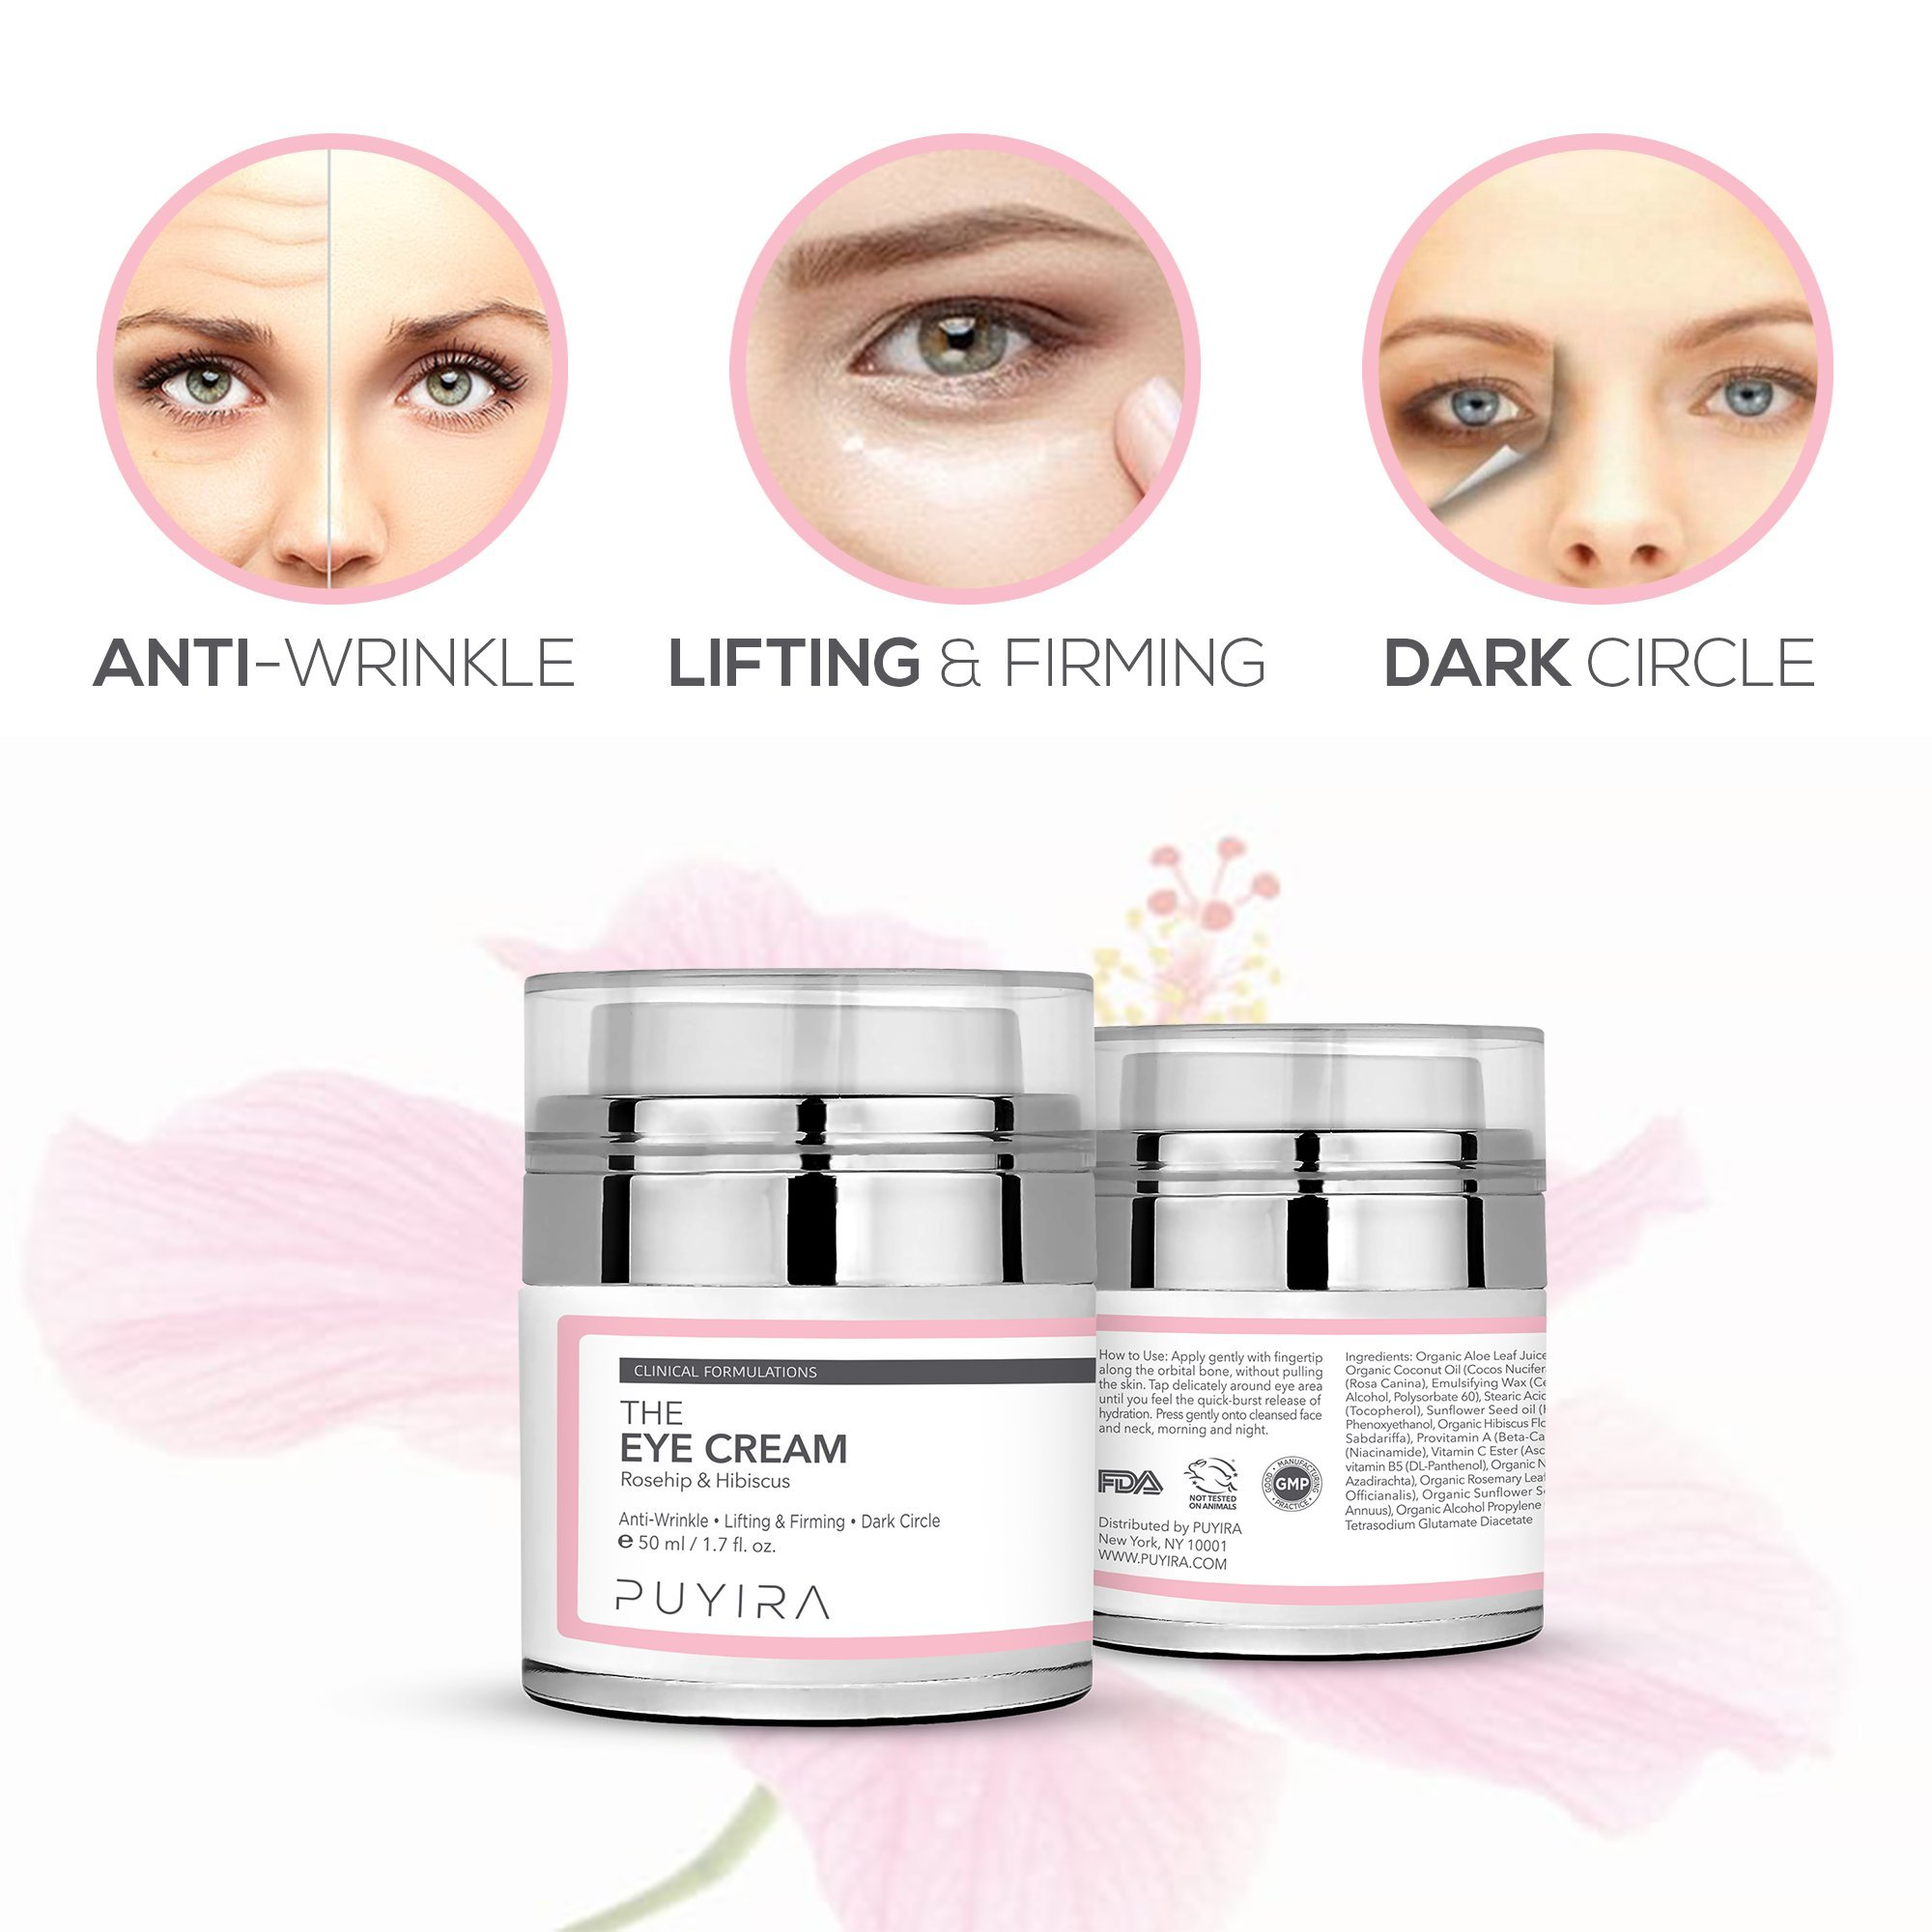 PUYIRA Rosehip Eye Cream Moisturizer , 1.7 fl.oz - Reducing Puffiness and Bags, Erasing Fine Lines and Wrinkles, Brightening Dark Circles by PUYIRA (Image #6)